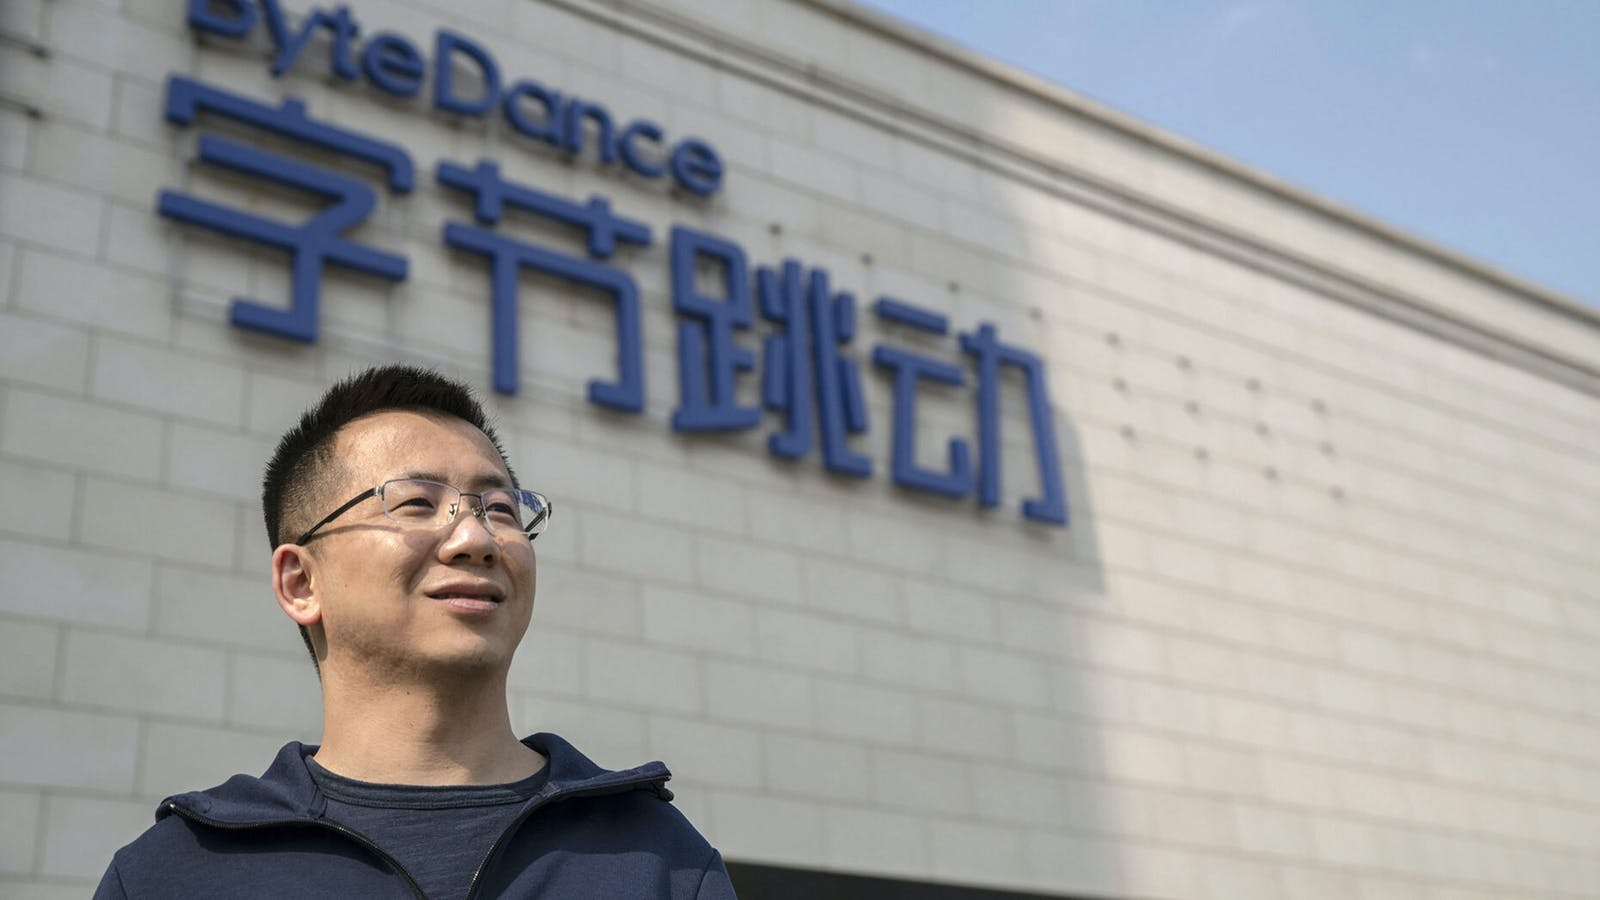 ByteDance founder Zhang Yiming. Photo by Bloomberg